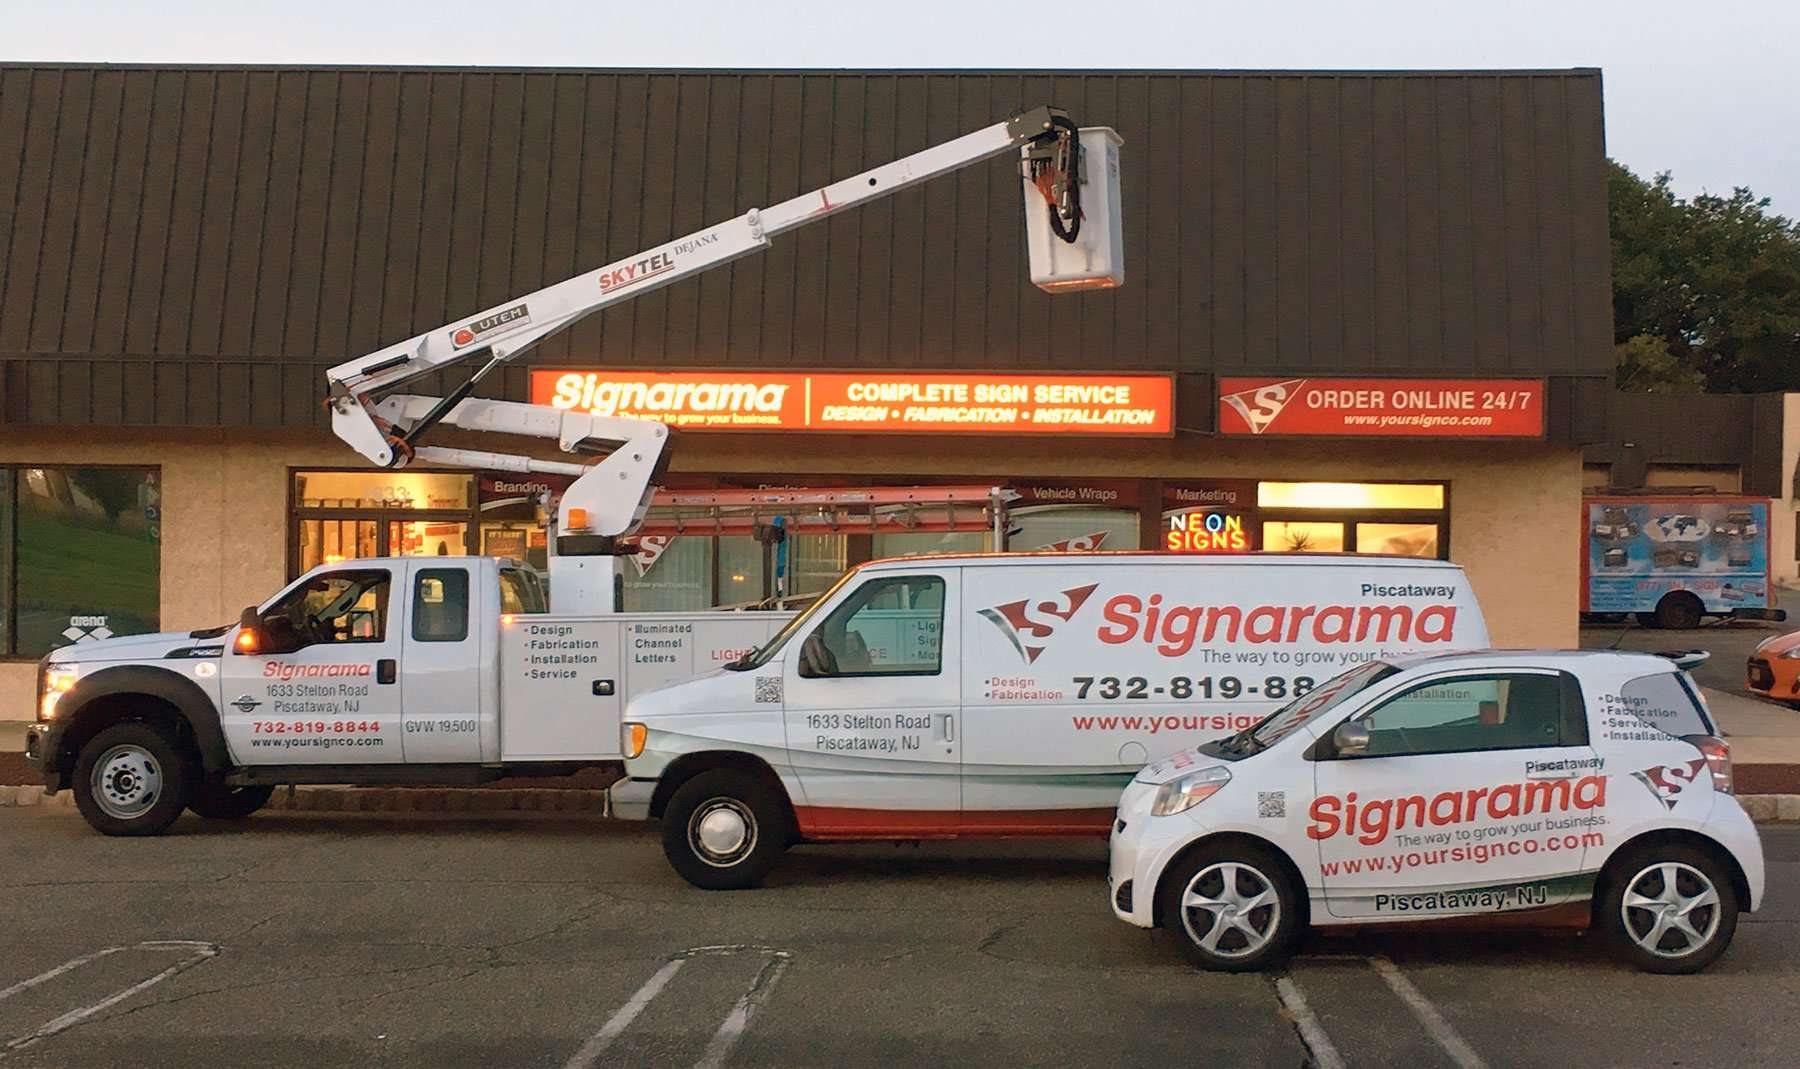 Signarama Piscataway - Serving The Signage Needs of Clients Across New Jersey and New York